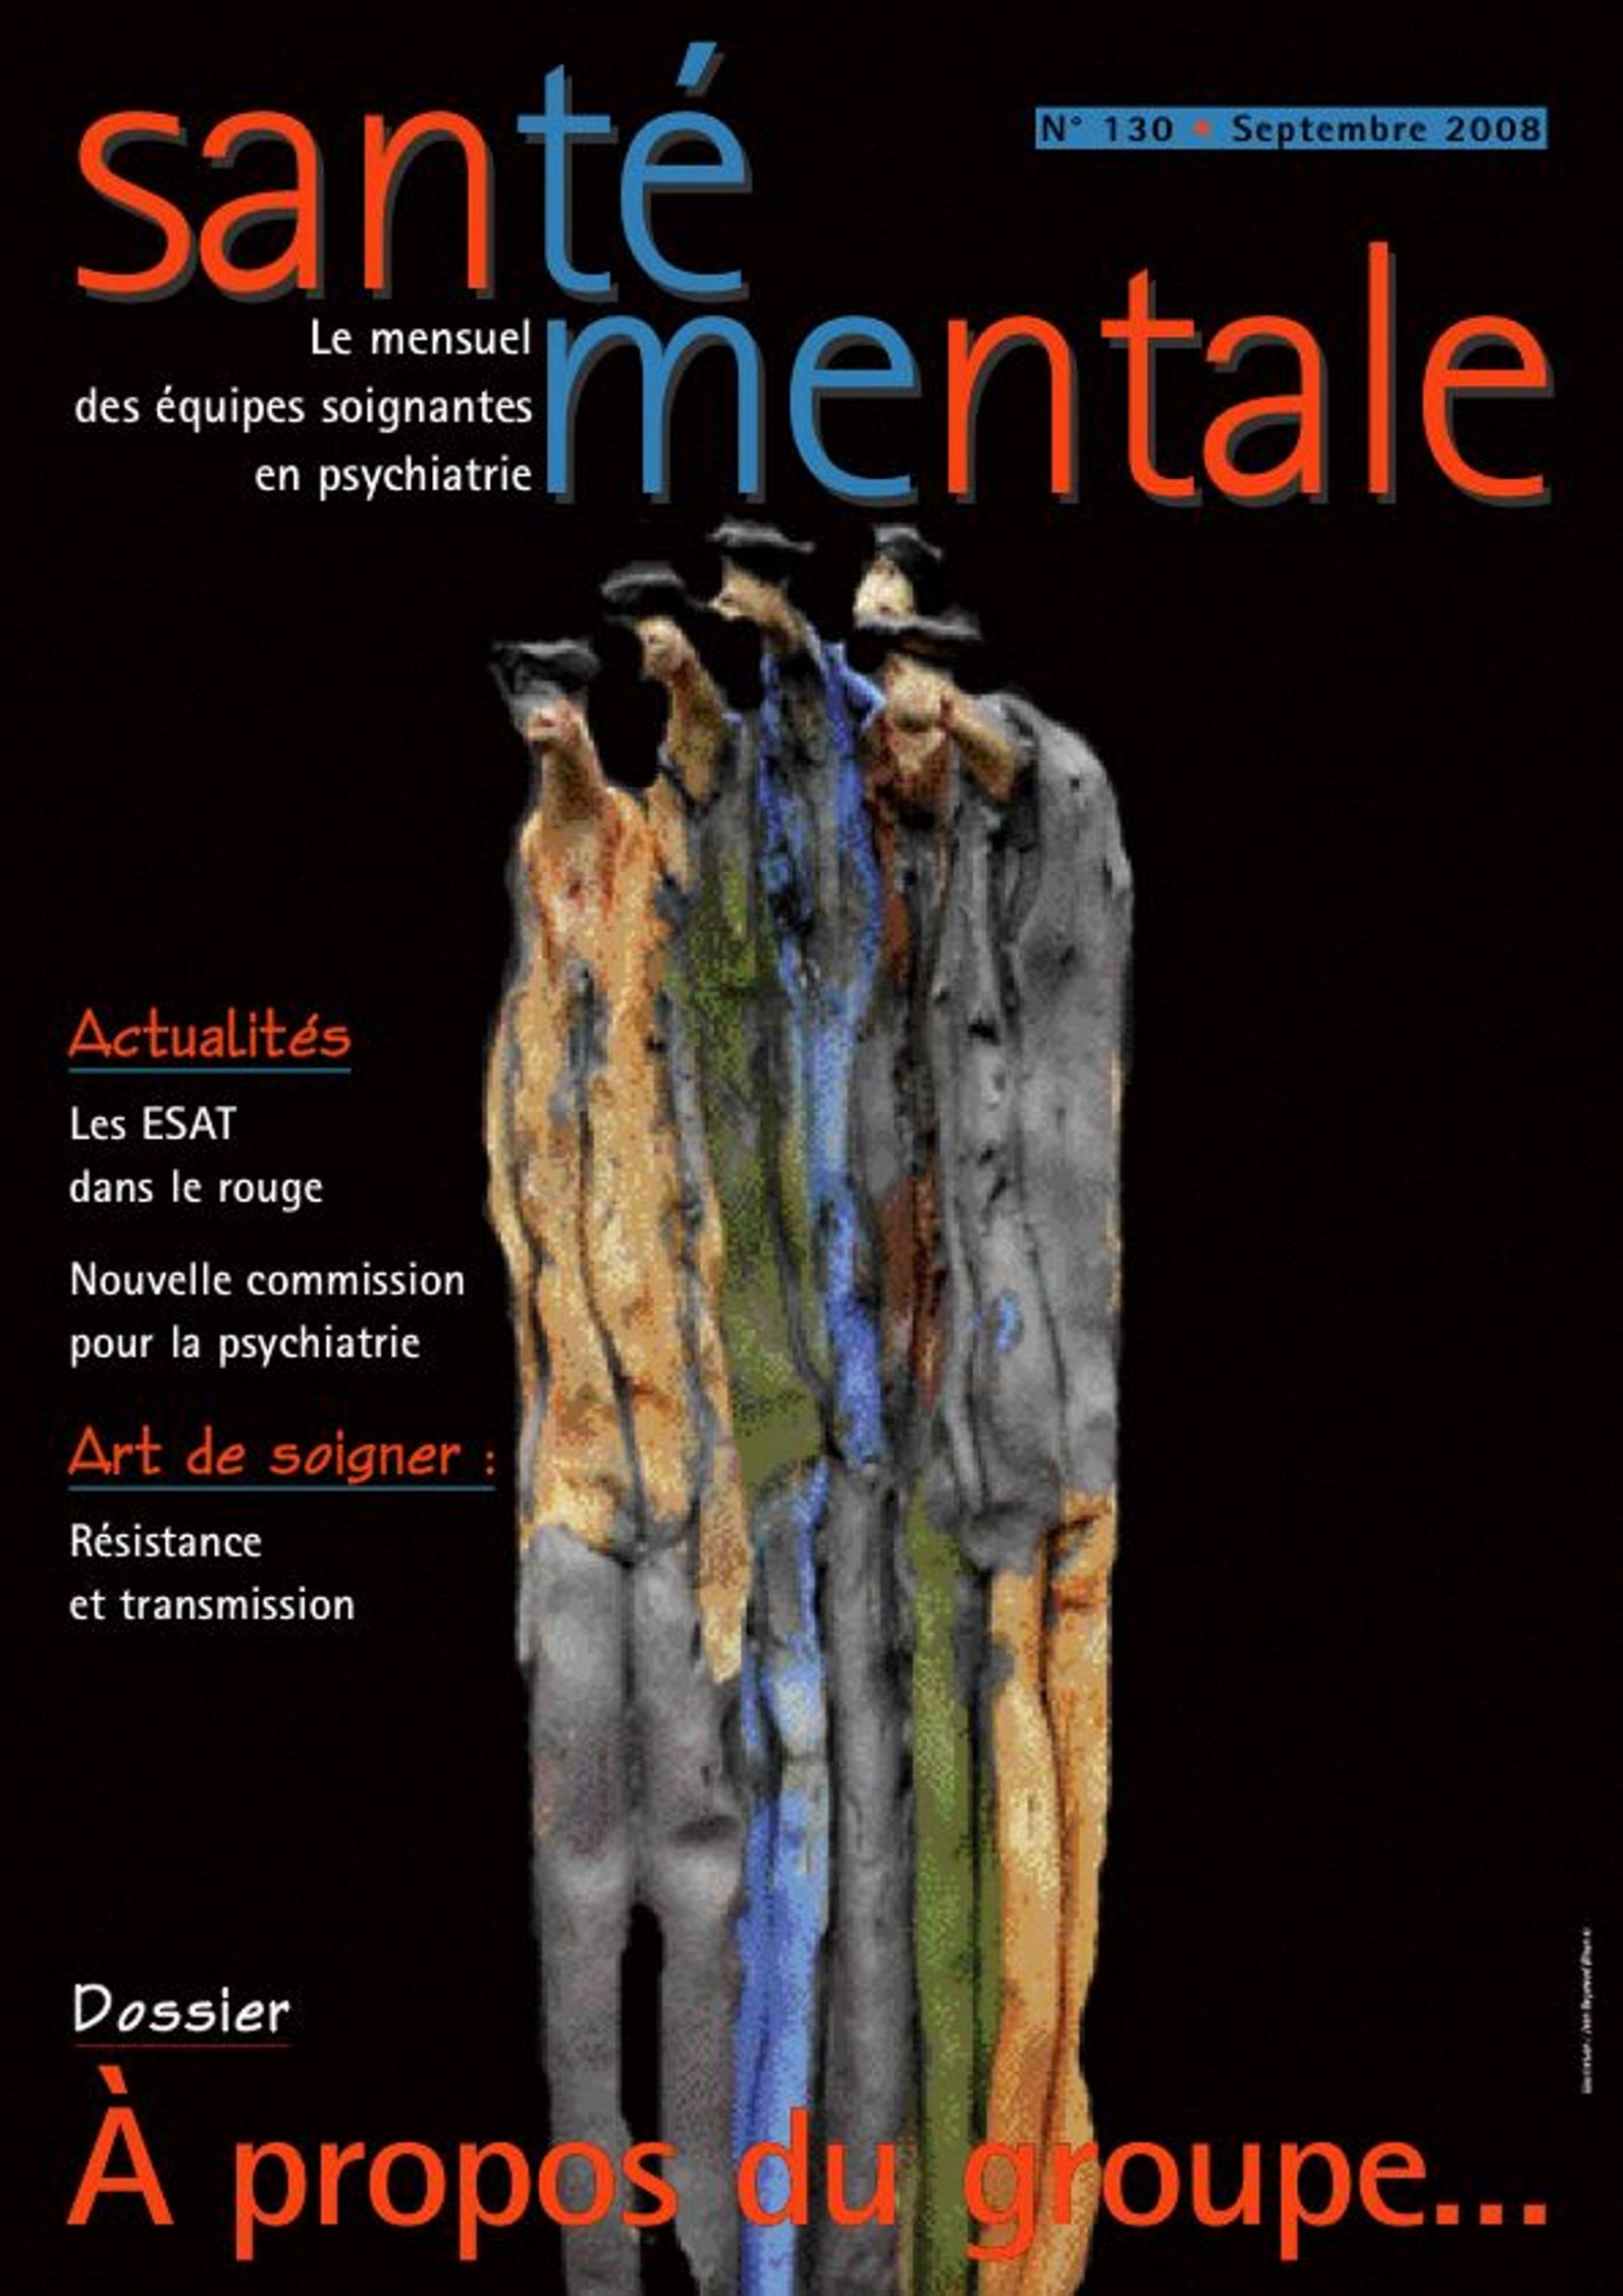 Couverture N°130 septembre 2008